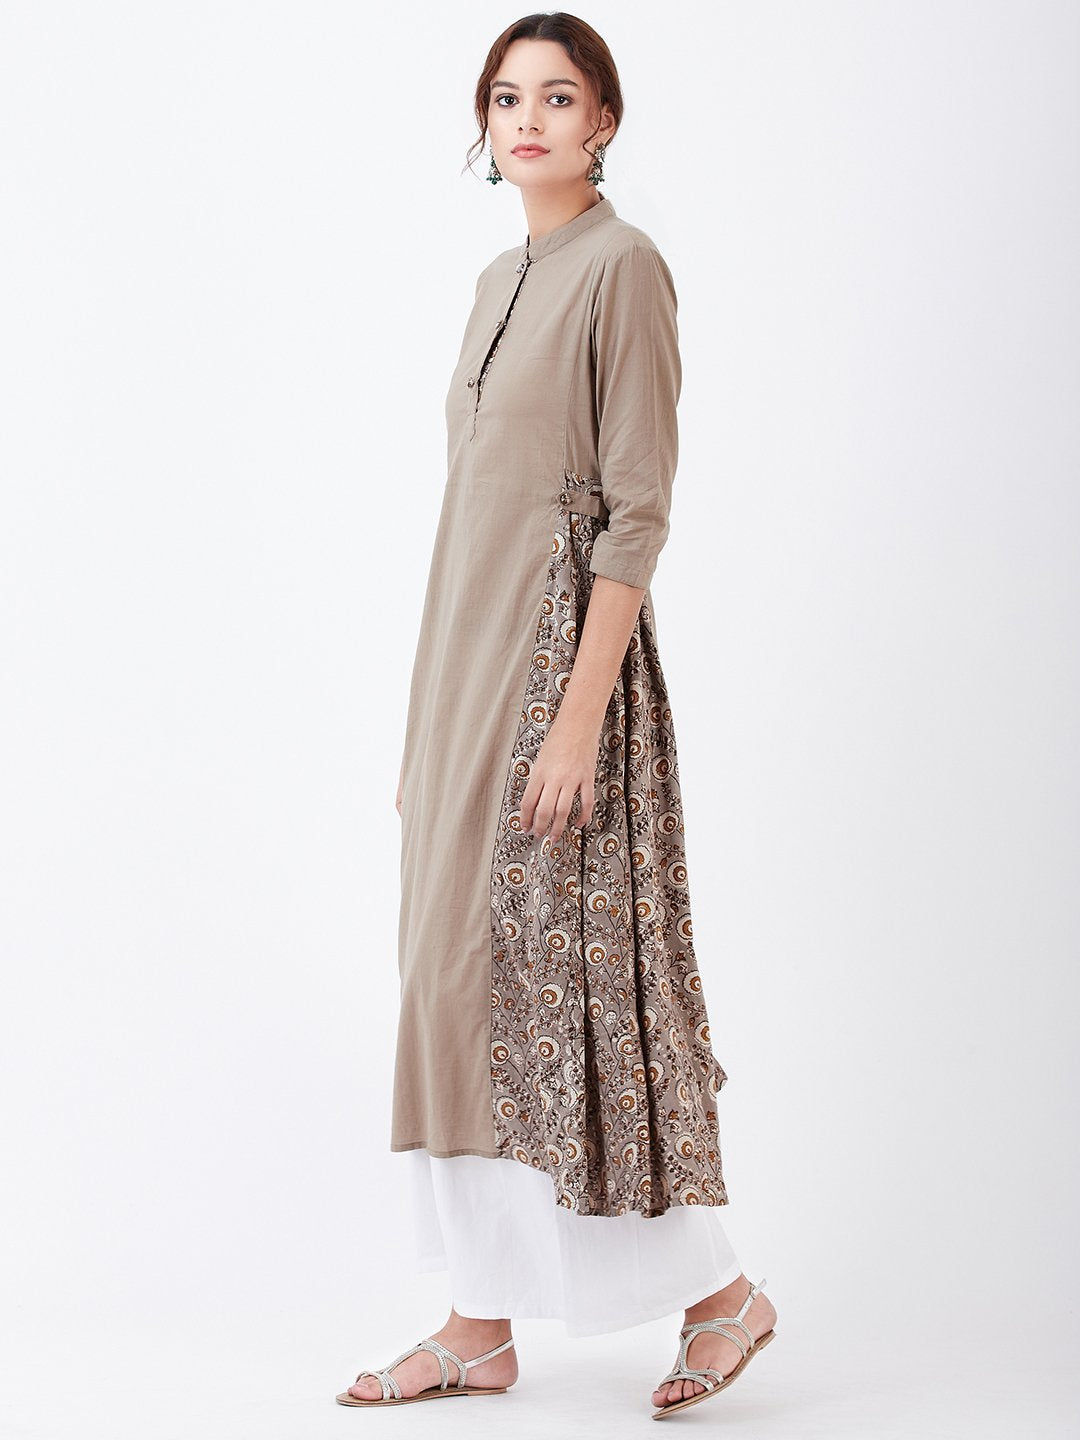 LYLA WOMAN BLOCK PRINTED KURTA